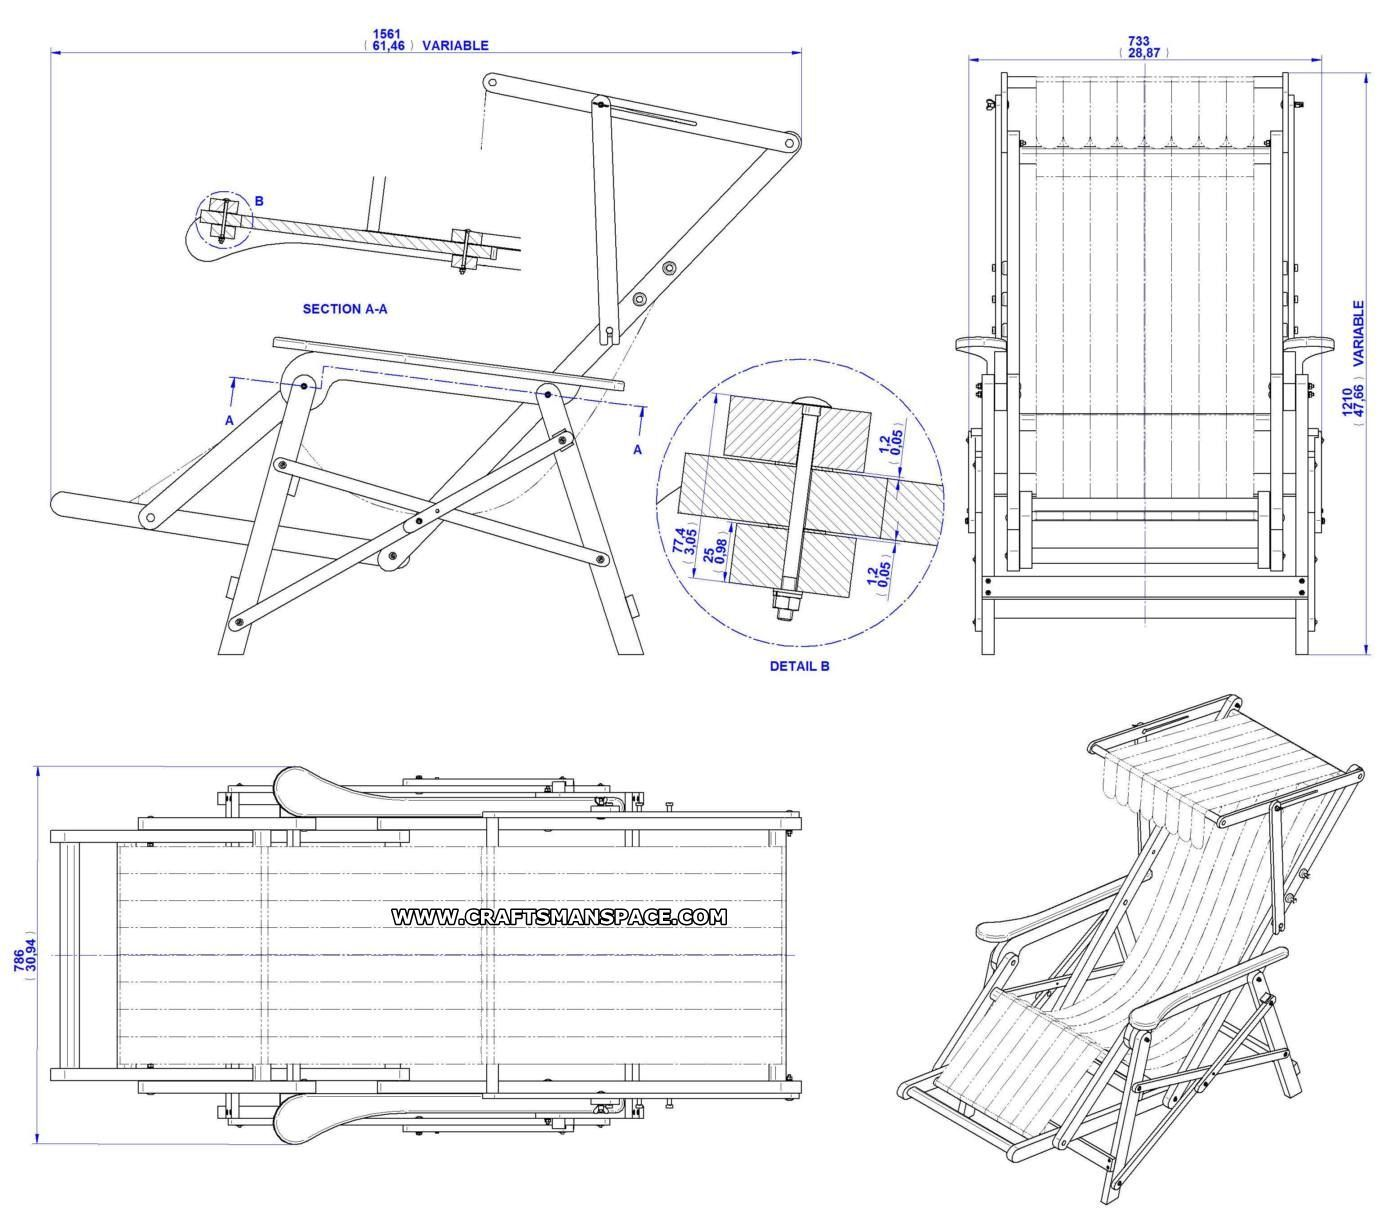 Lounge chair top view drawing - Beach Chair Plan Assembly Drawing